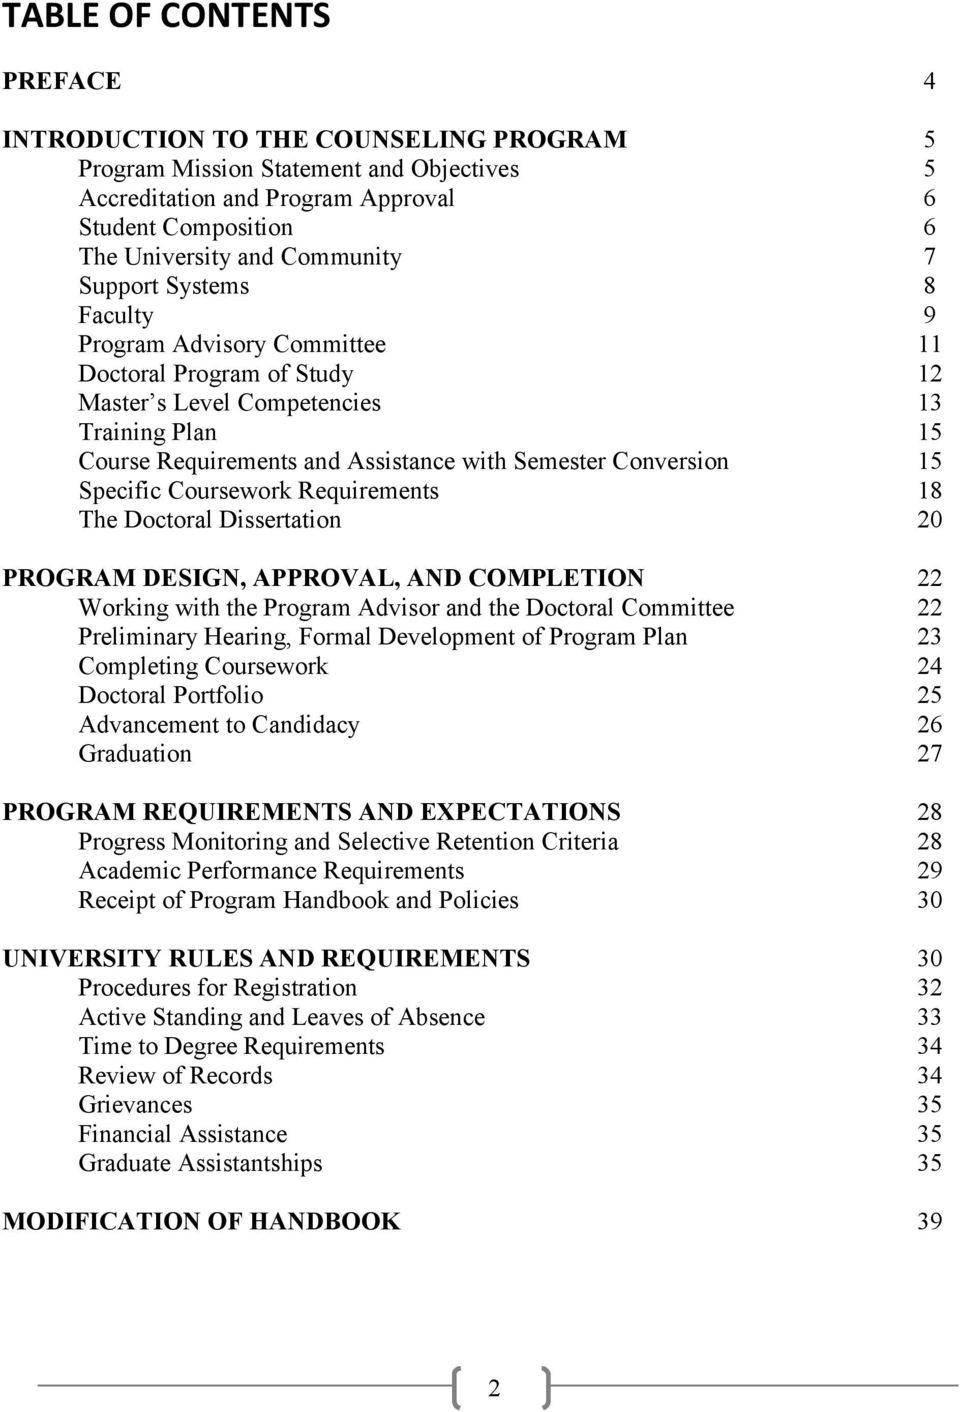 Specific Coursework Requirements 18 The Doctoral Dissertation 20 PROGRAM DESIGN, APPROVAL, AND COMPLETION 22 Working with the Program Advisor and the Doctoral Committee 22 Preliminary Hearing, Formal